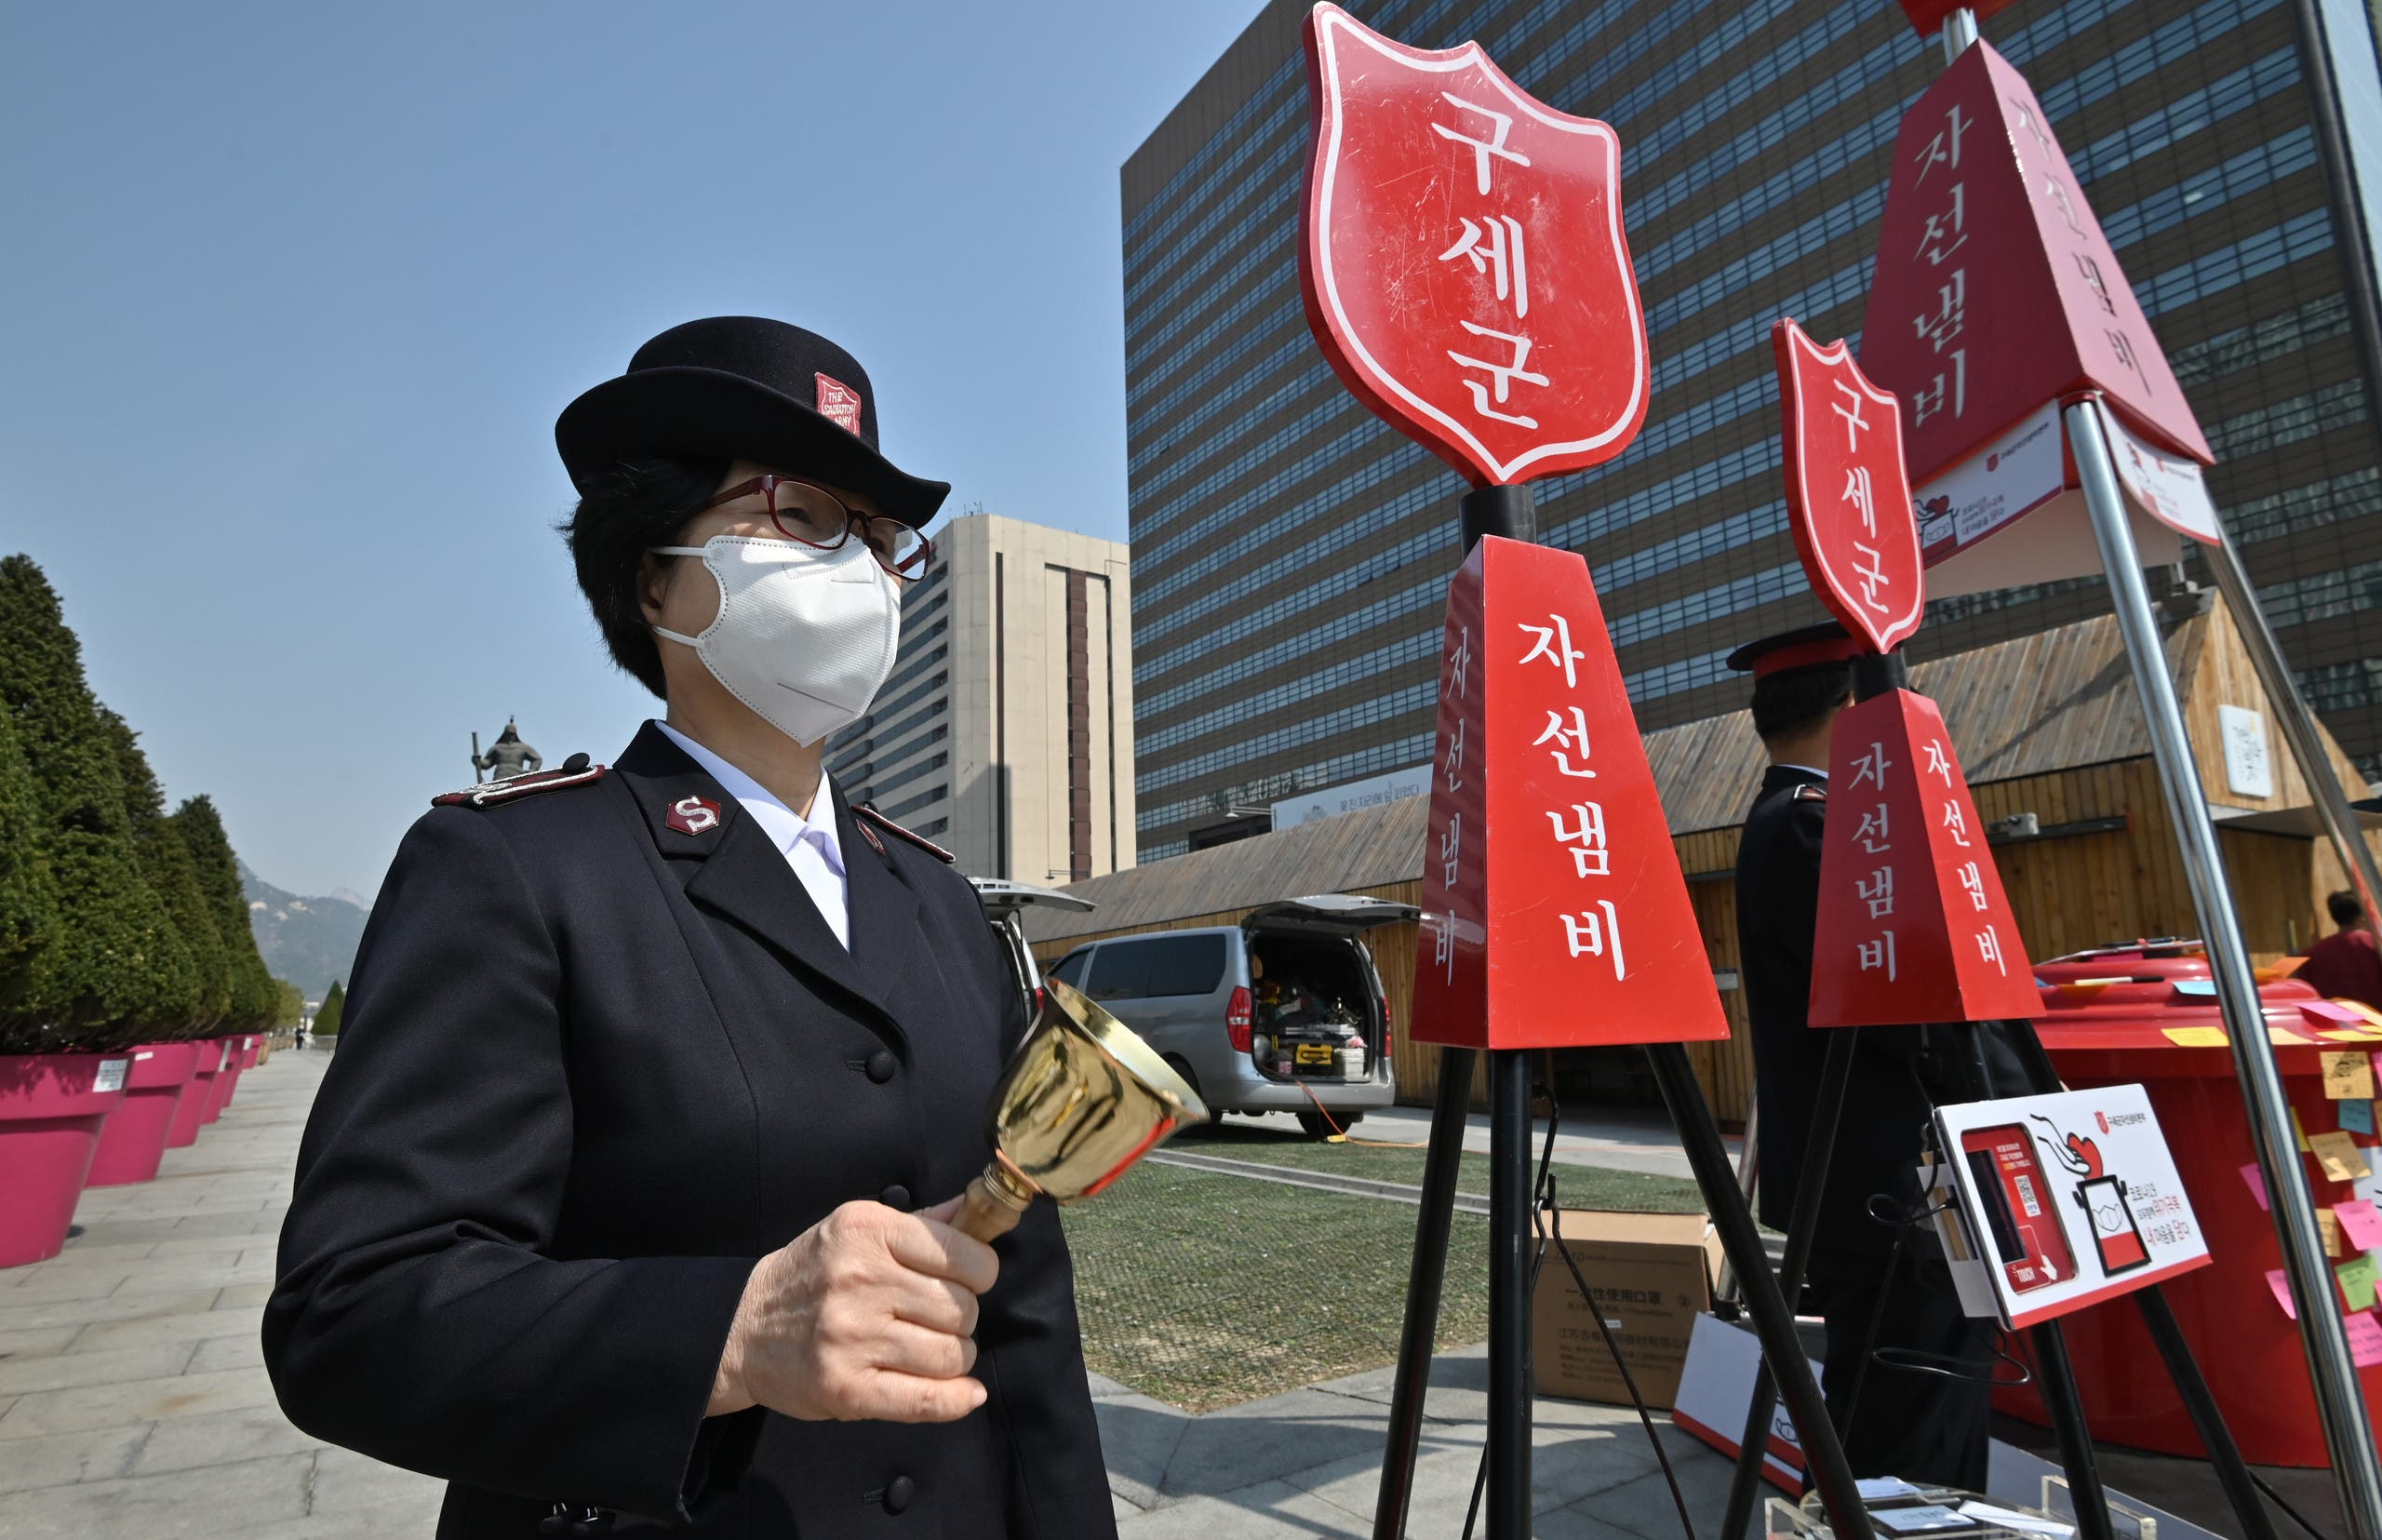 A member of the Salvation Army rings a bell next to a charity pot during a campaign for the donation of face masks in downtown Seoul on March 25, 2020. (AFP)